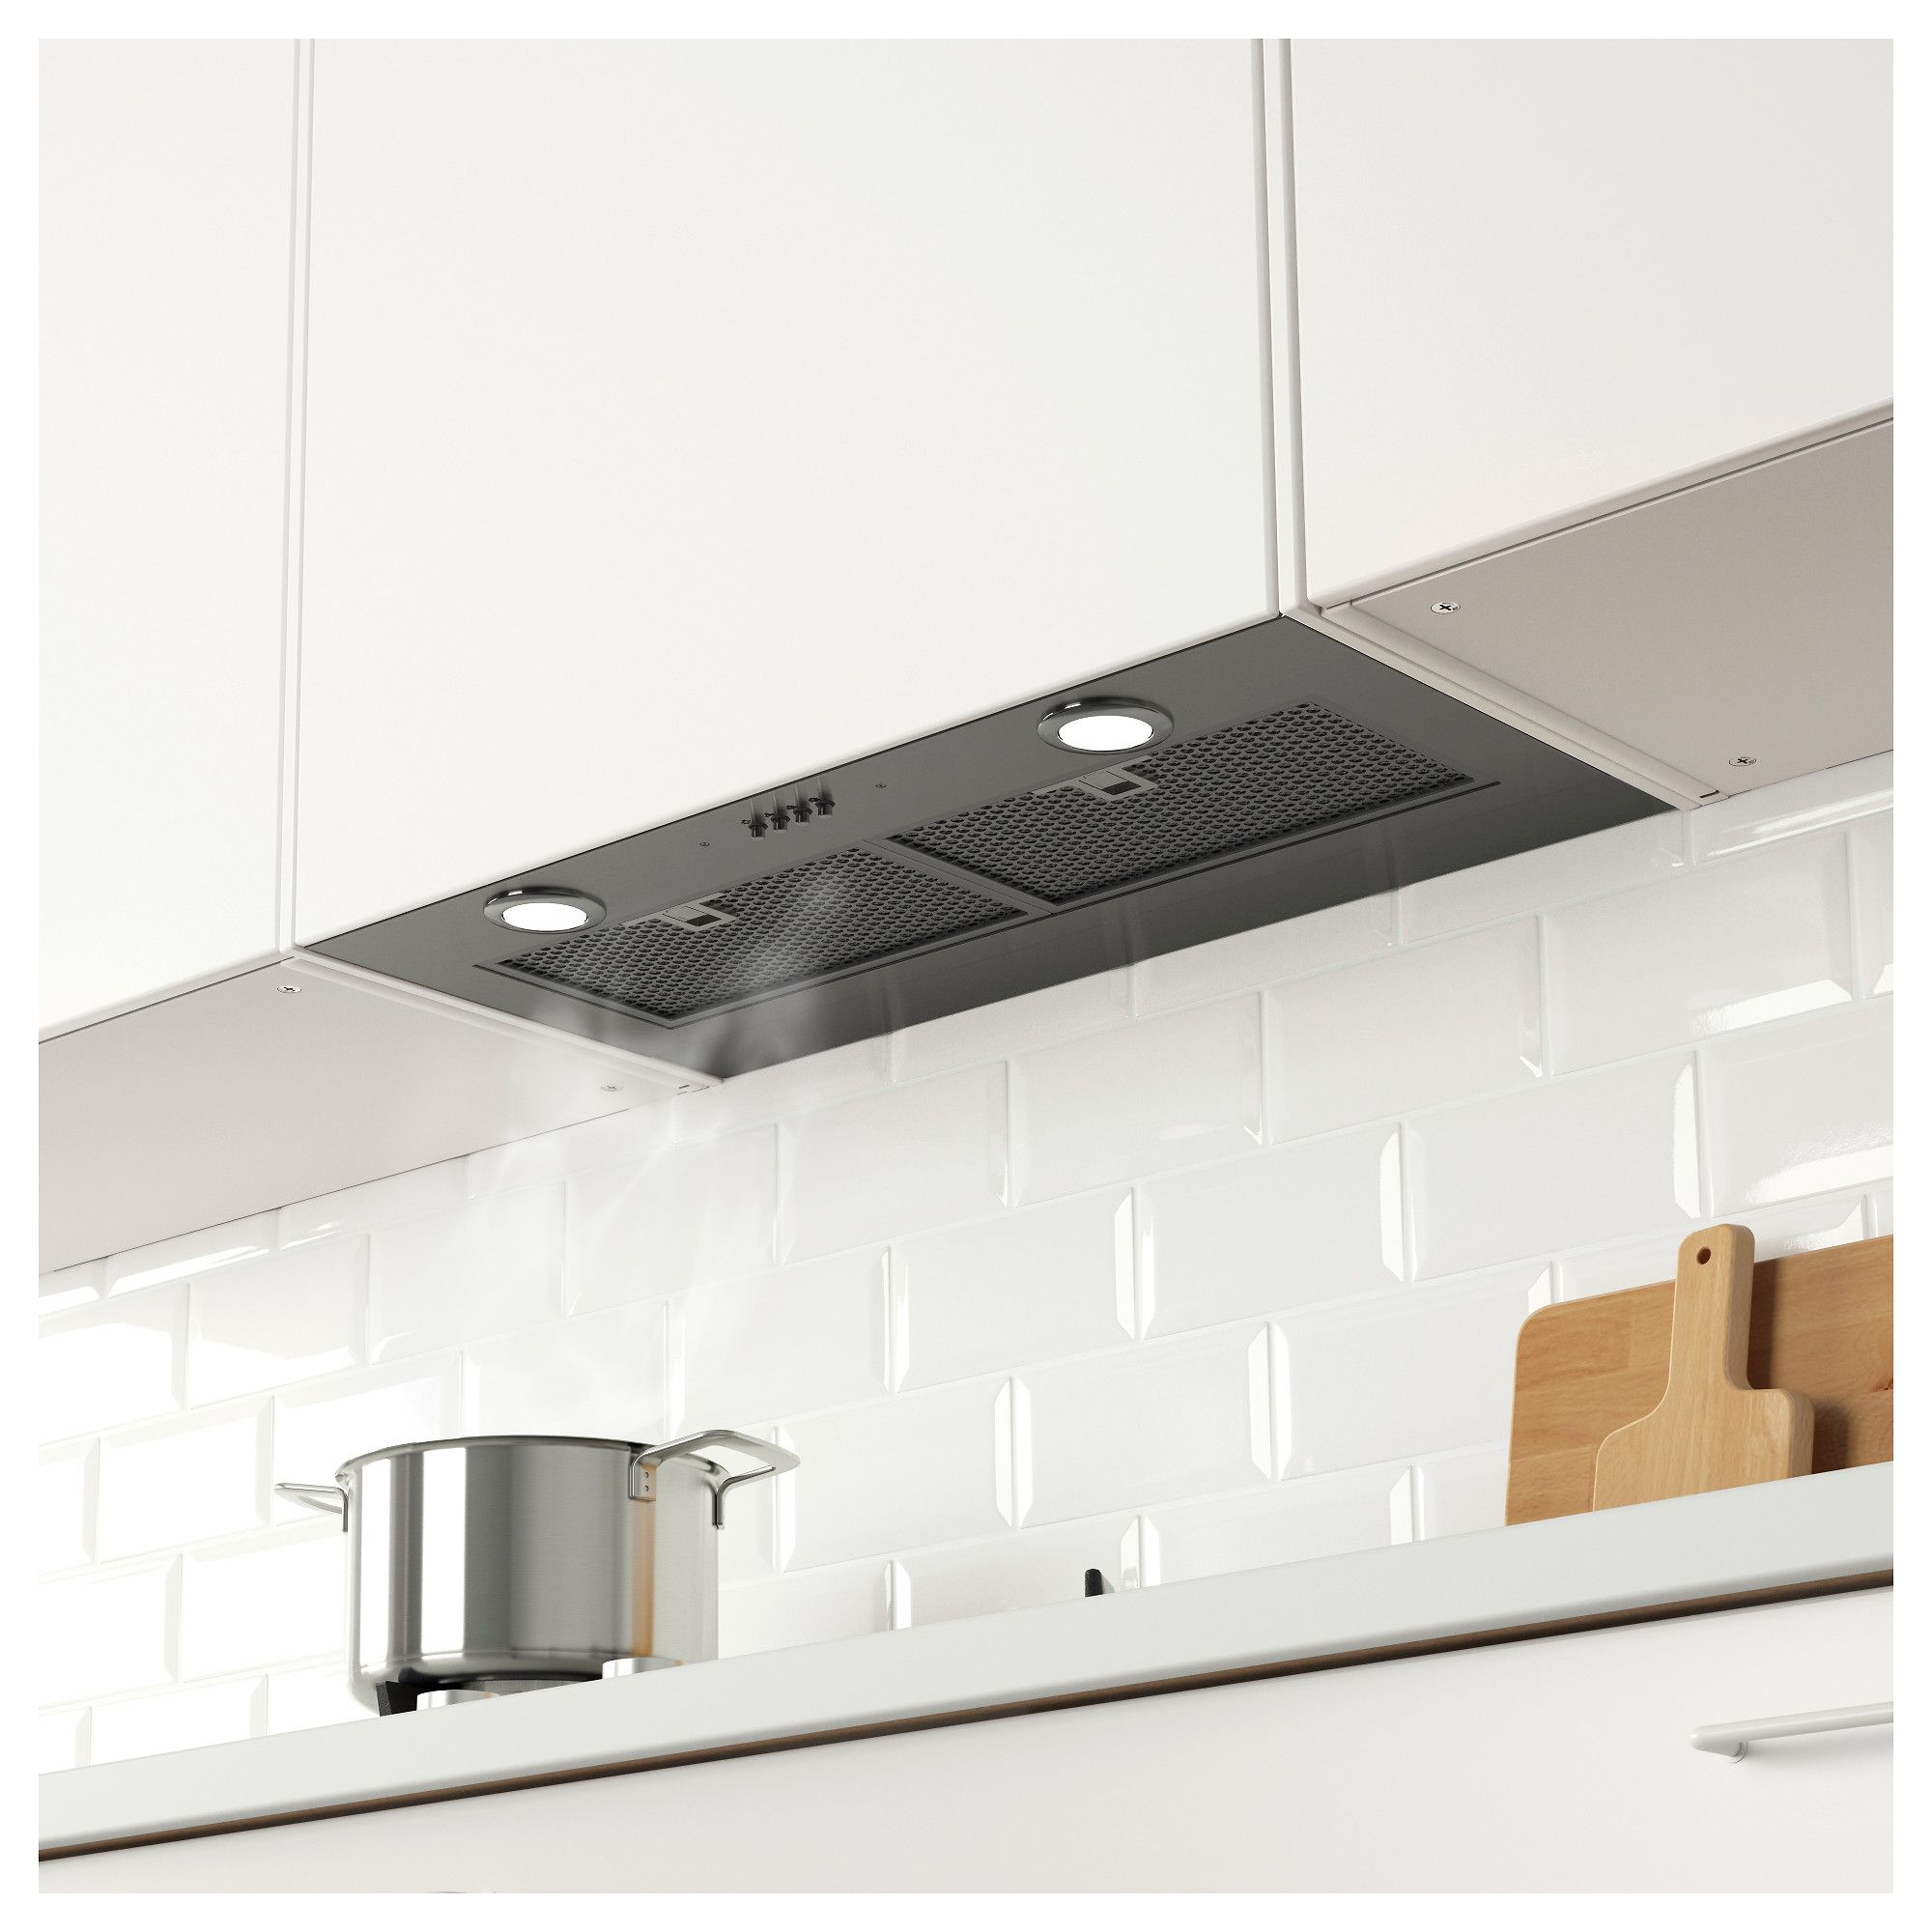 Eventuell Built In Extractor Hood Stainless Steel Extractor Hood Clean Kitchen Cabinets White Modern Kitchen